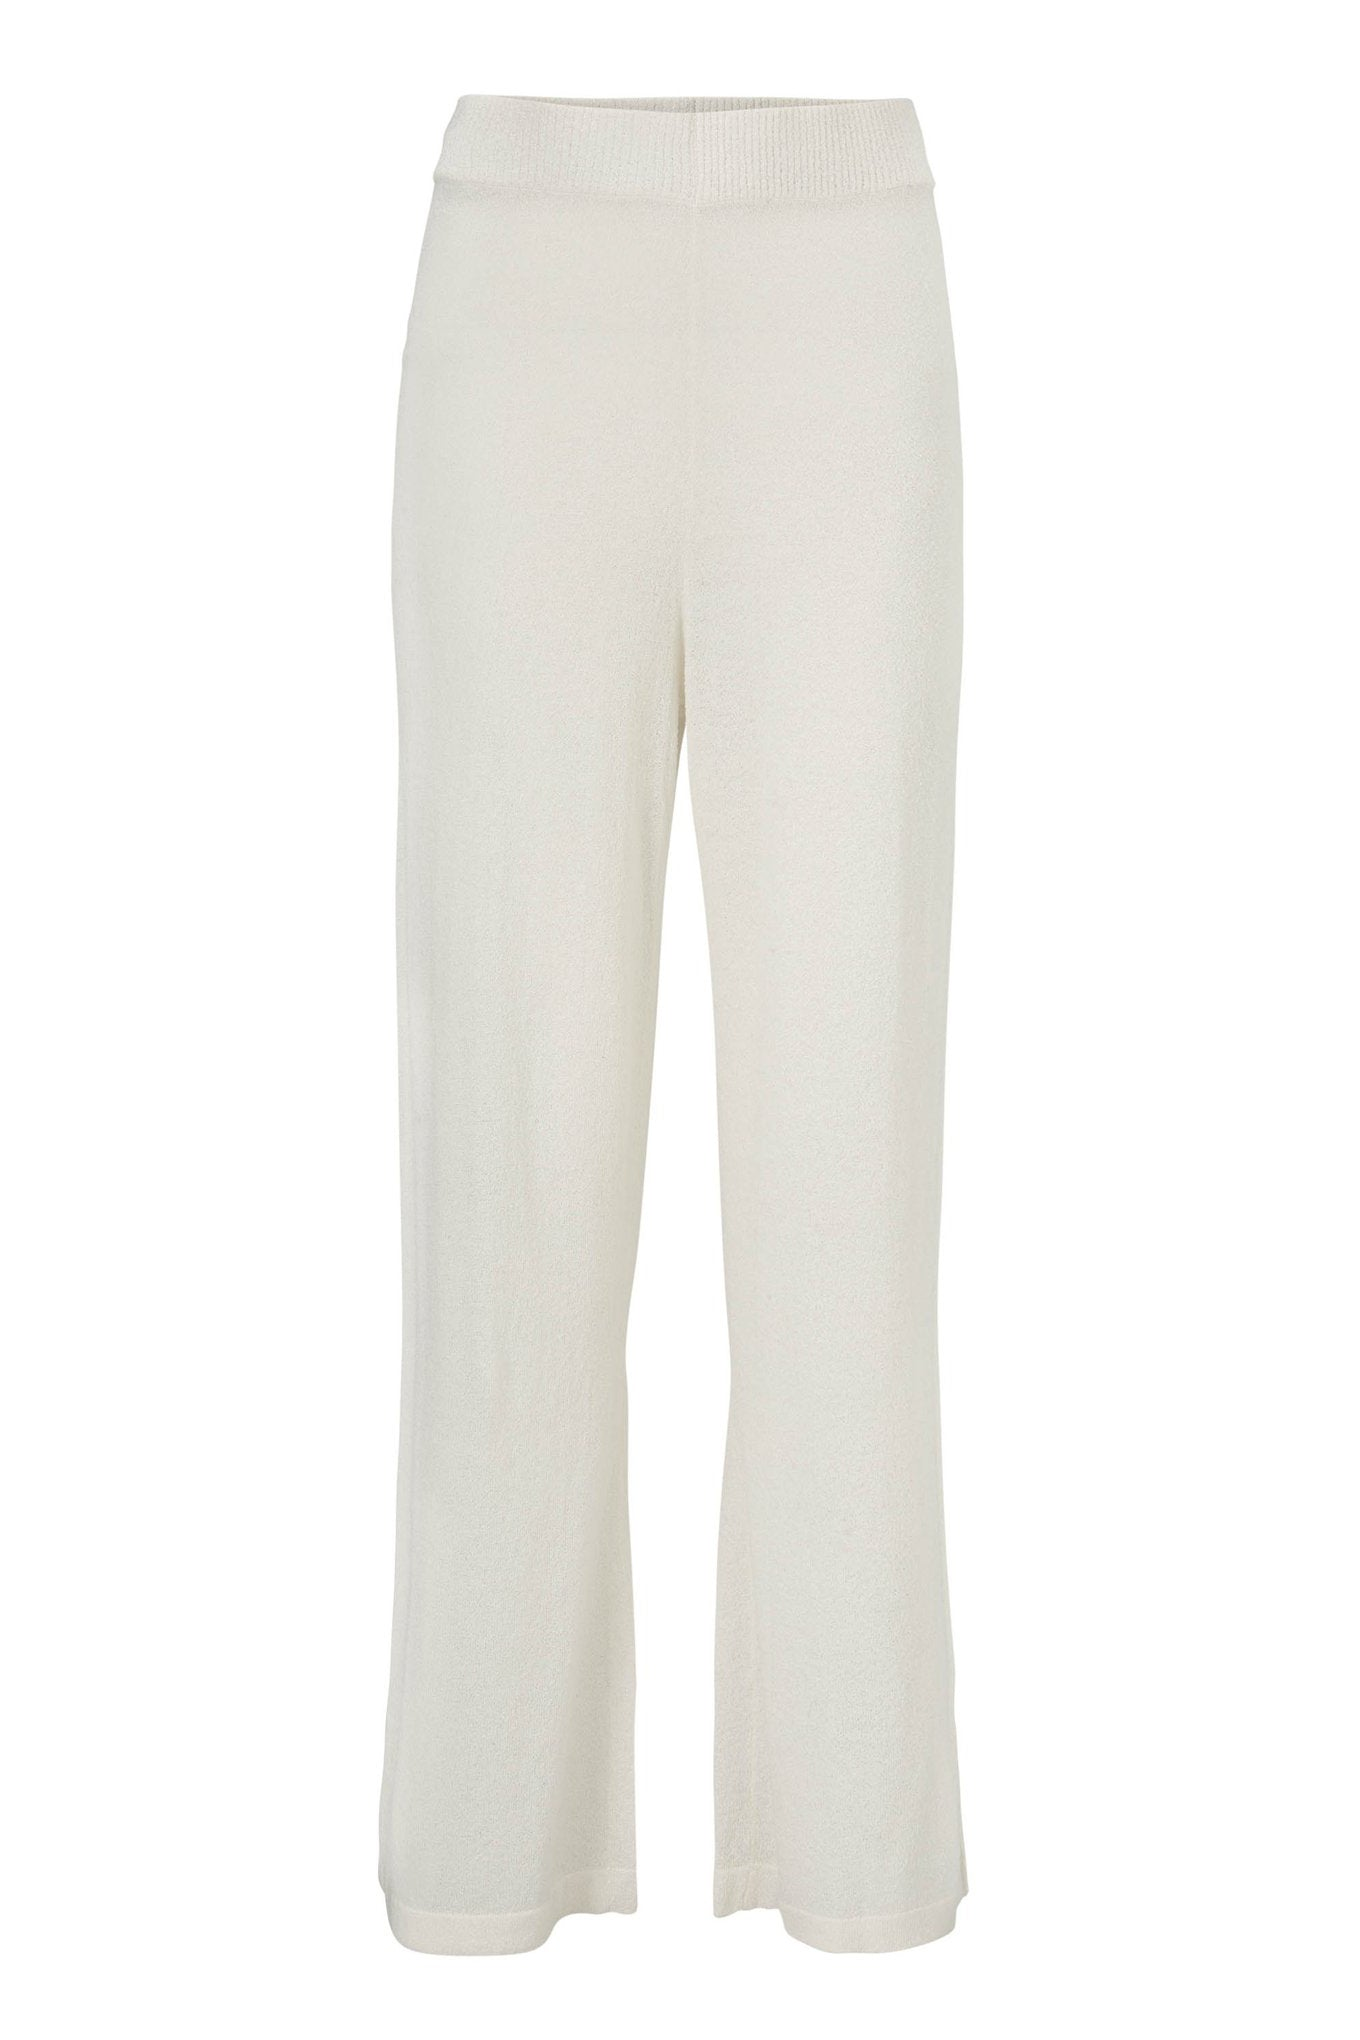 Stella Knit Pant - Chalk - Silk/Knit